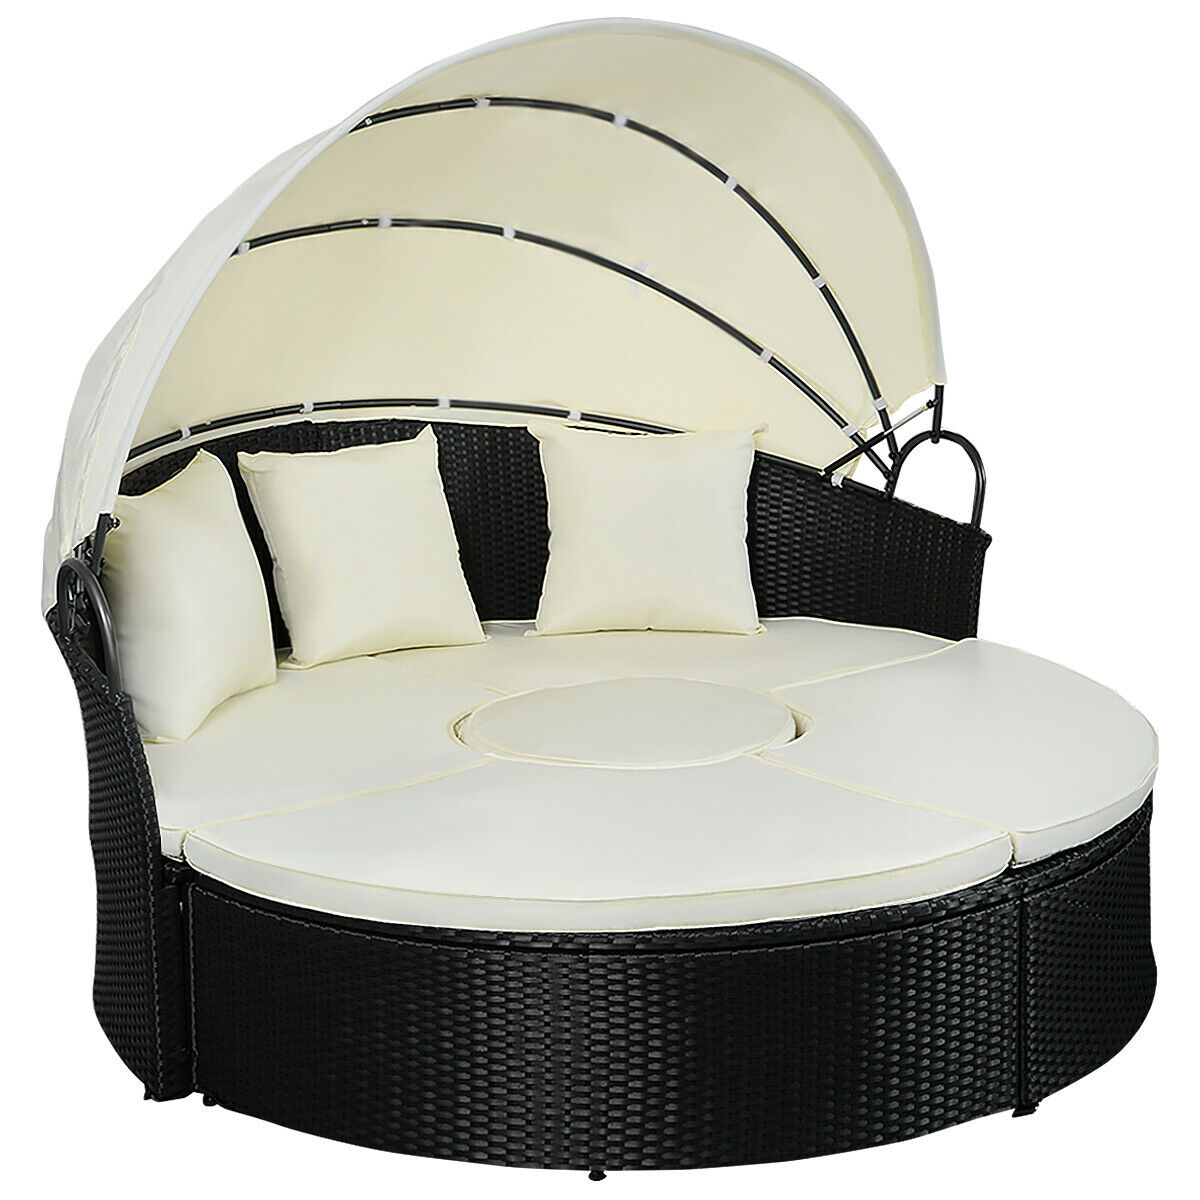 Gymax Rattan Wicker Round Retractable Canopy Daybed Sofa Furniture Set Outdoor Patio - image 9 of 9